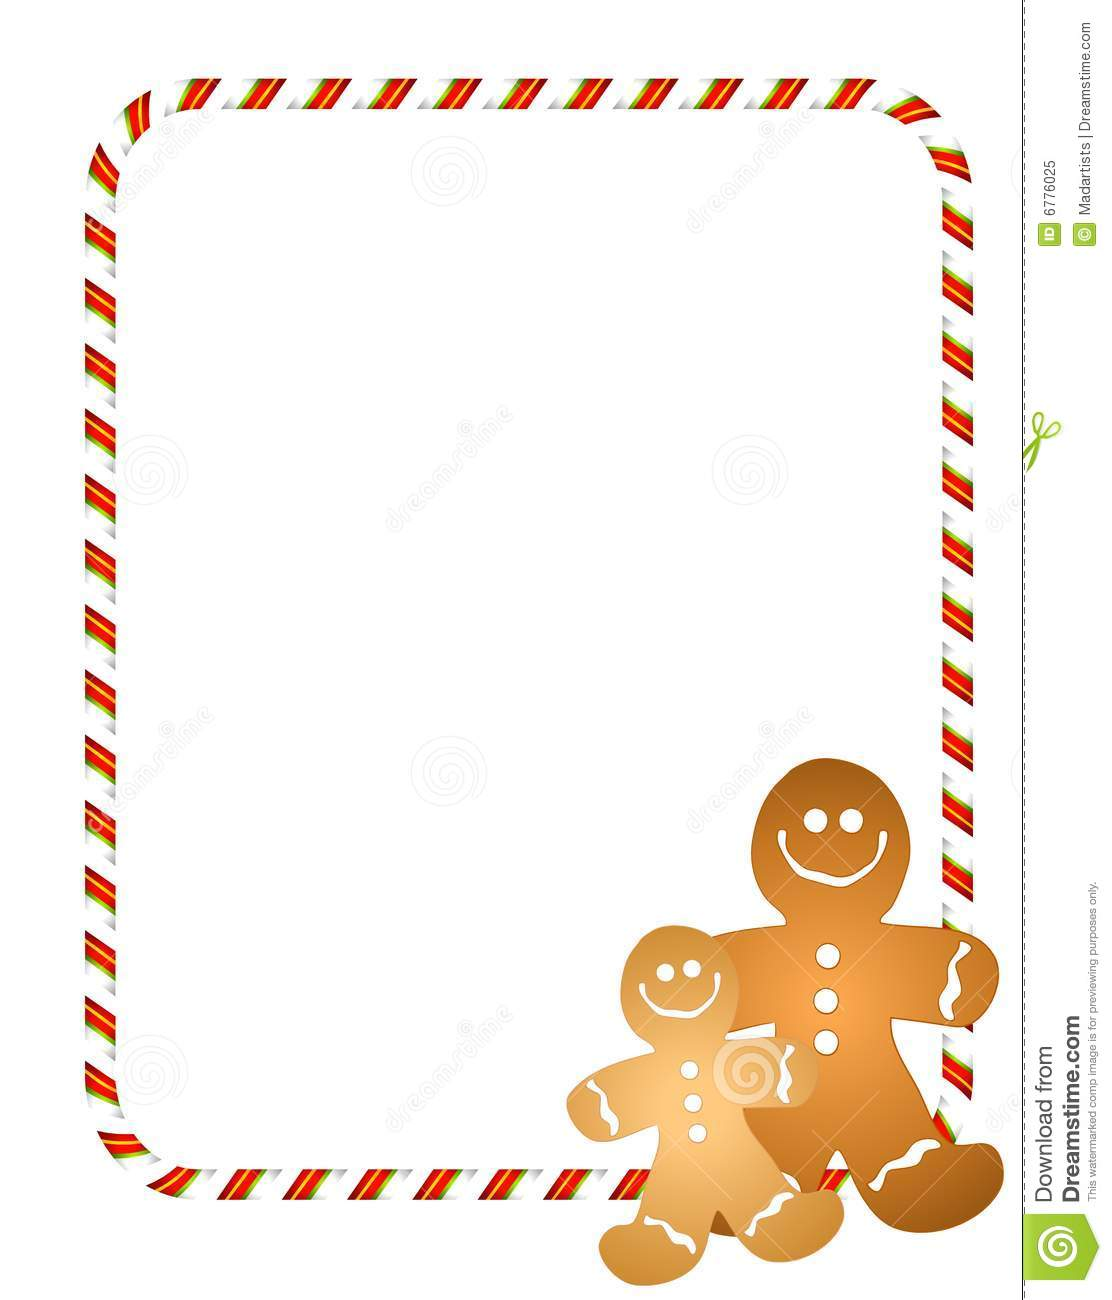 gingerbread men border stock illustration illustration of free reindeer clipart border free reindeer clip art download